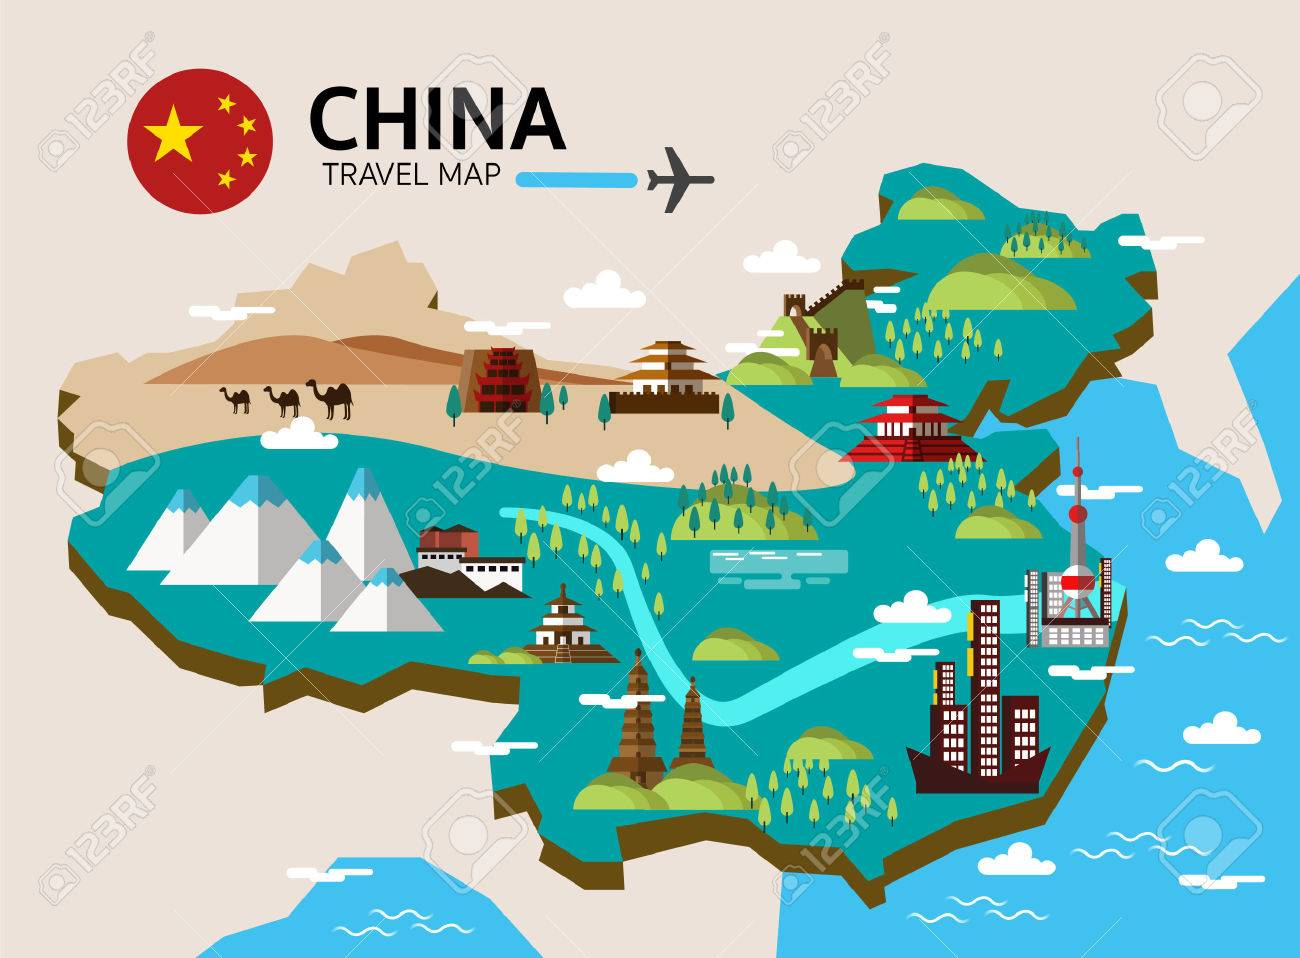 China landmark and travel map flat design elements and icons china landmark and travel map flat design elements and icons vector illustration stock vector gumiabroncs Gallery